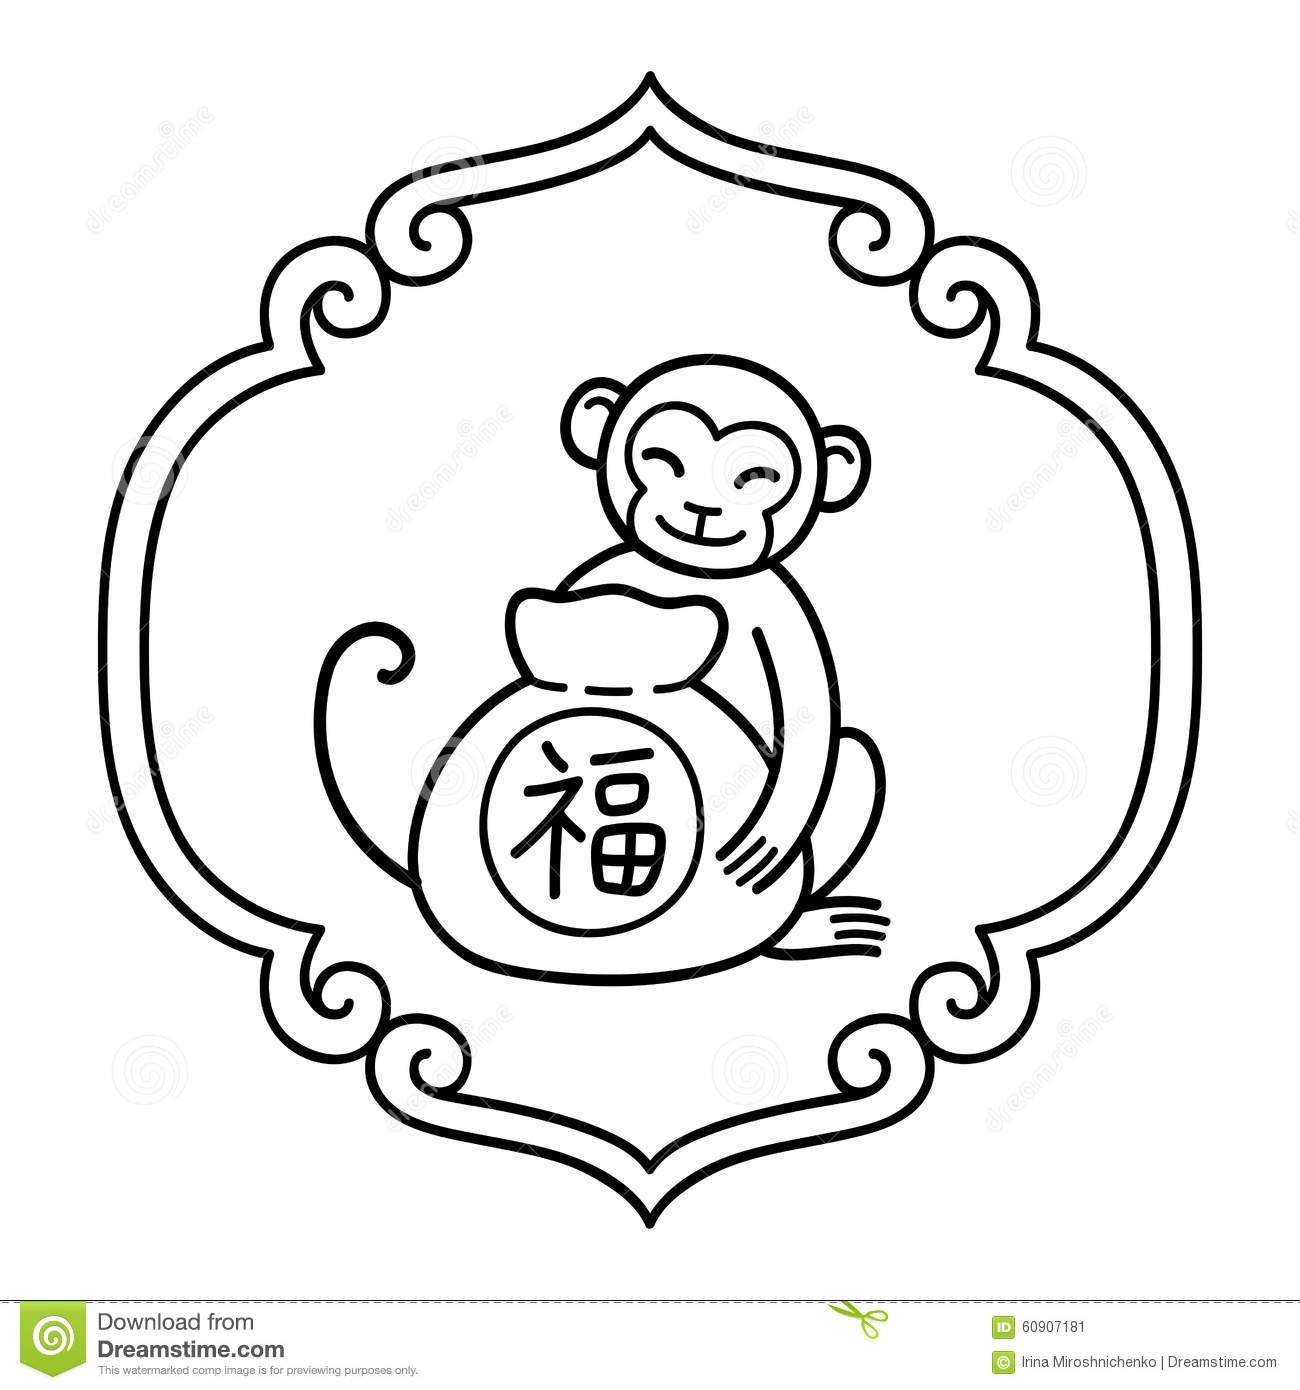 Monkey clipart icon new year image royalty free stock Chinese new year clipart black and white - ClipartFest image royalty free stock